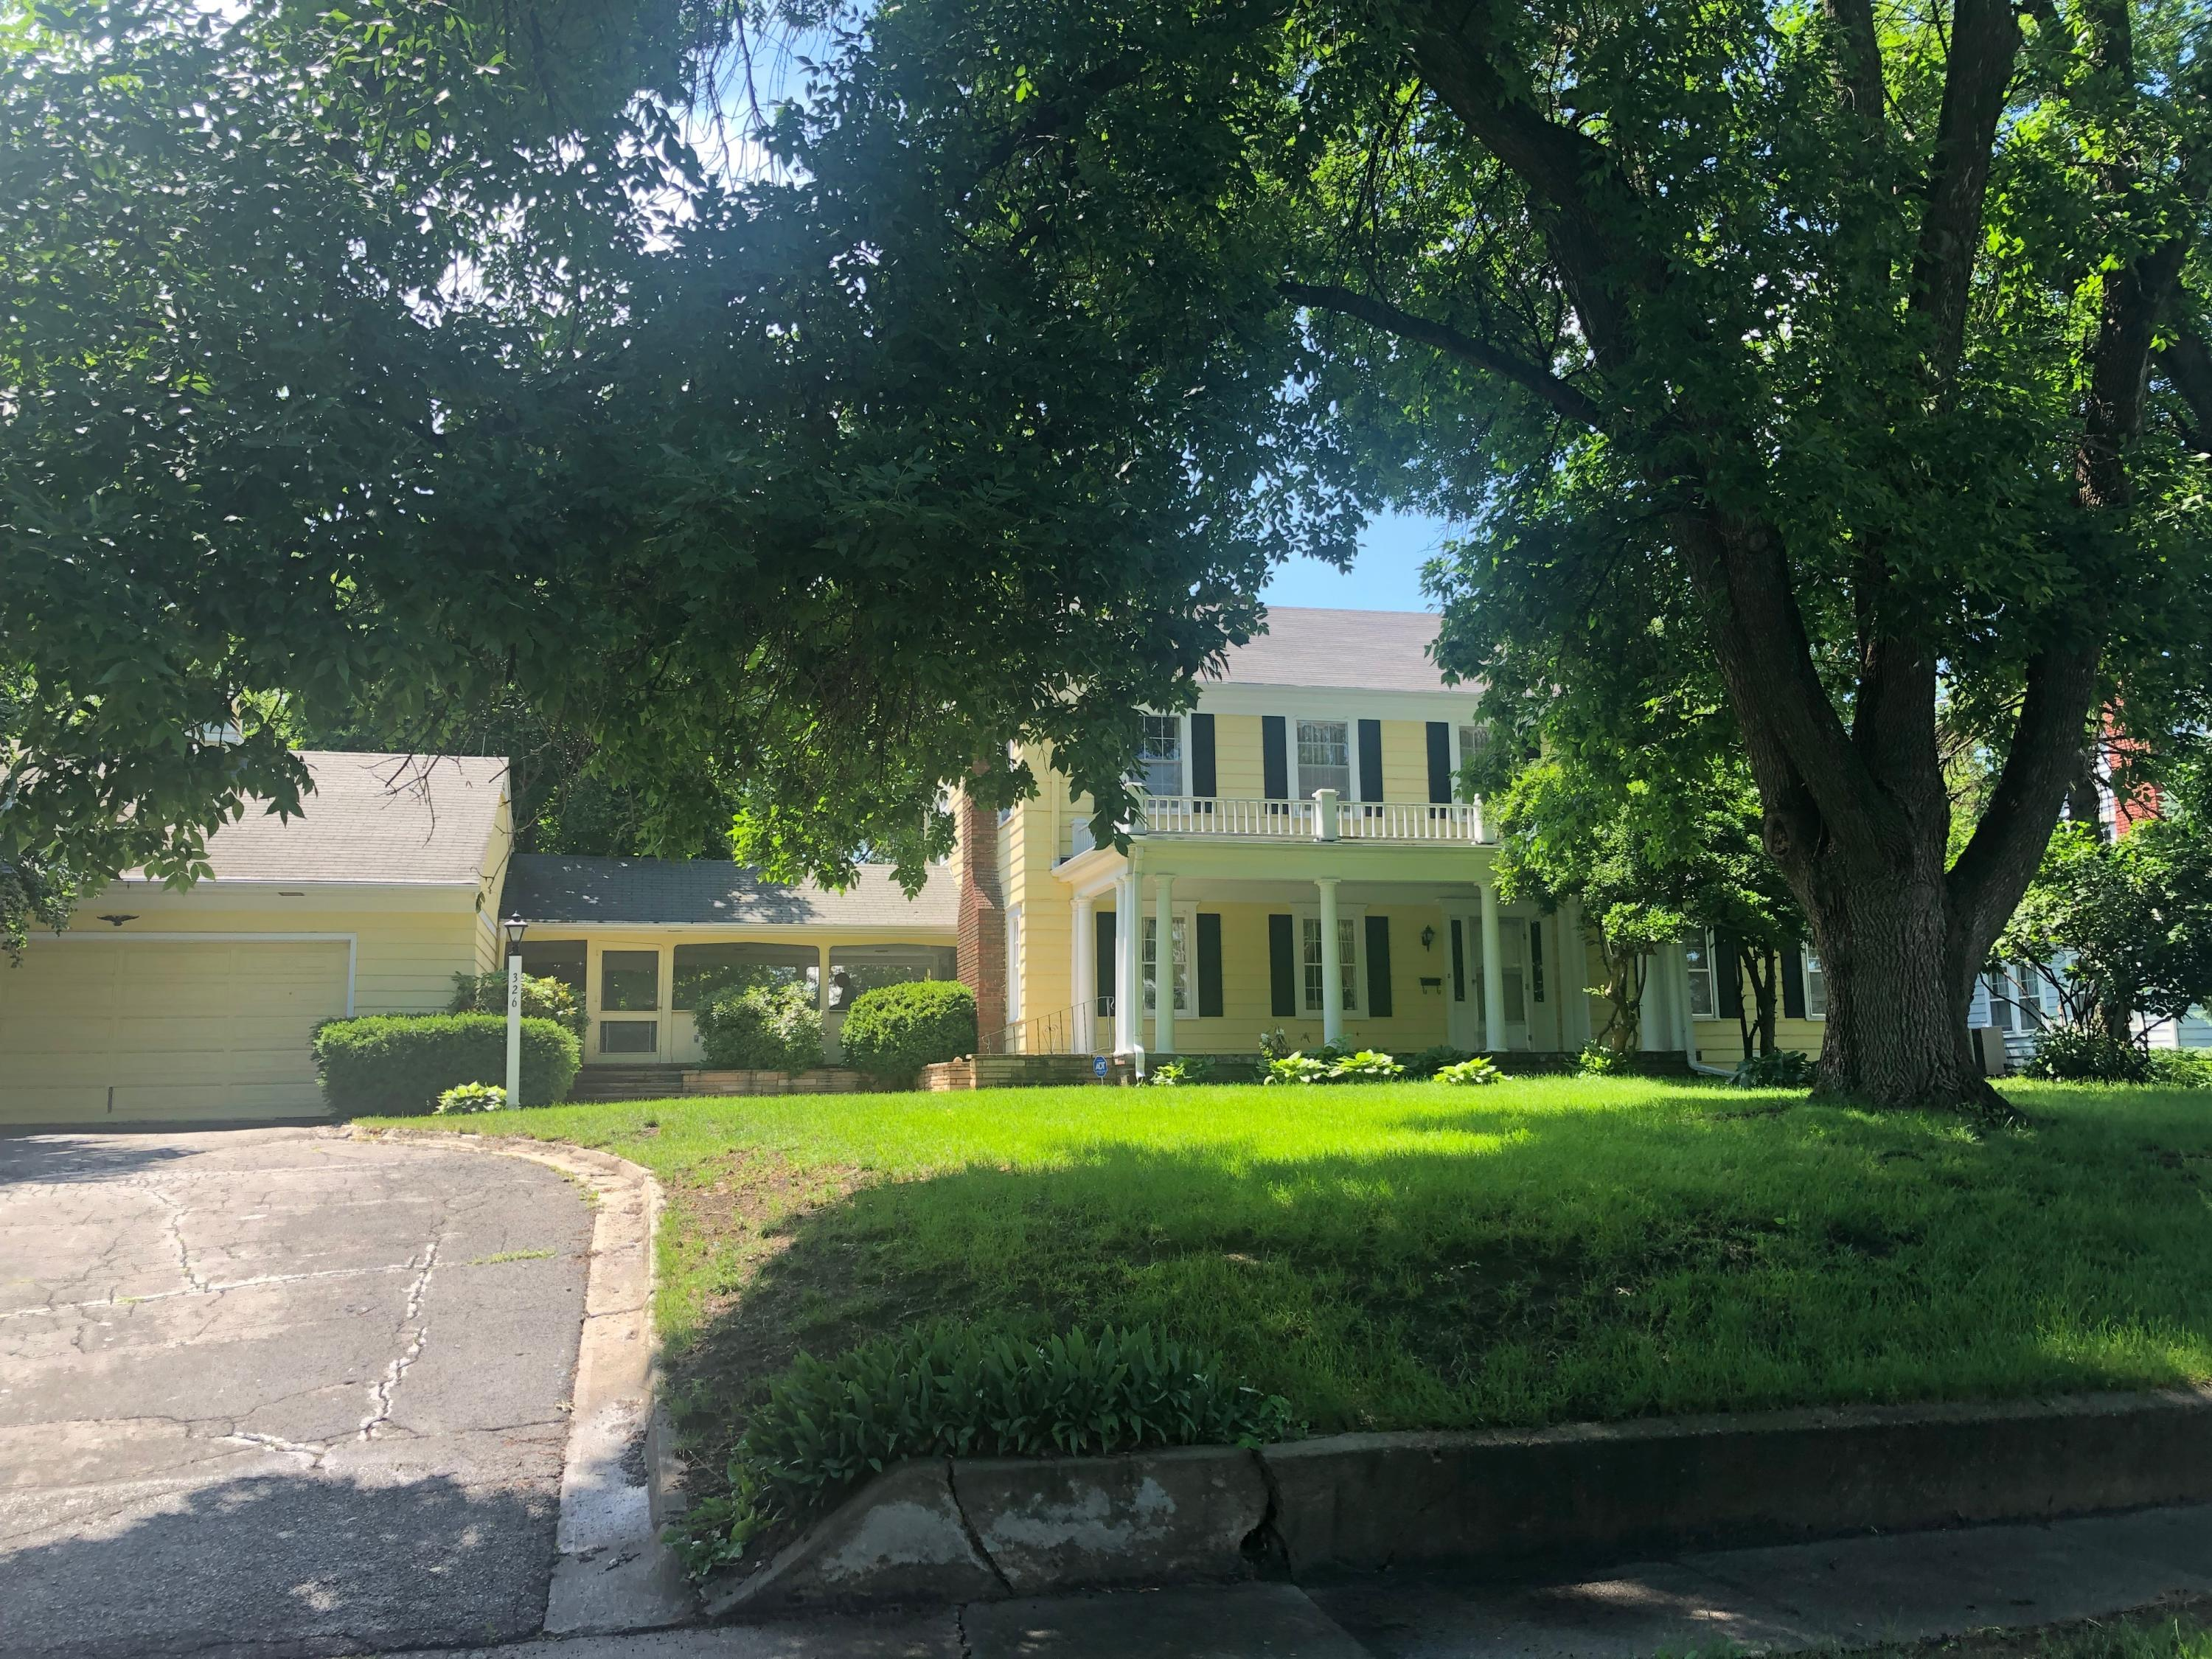 326 GRAND AVE, Maryville, Missouri 64468, 4 Bedrooms Bedrooms, ,3.5 BathroomsBathrooms,Residential,GRAND,4503